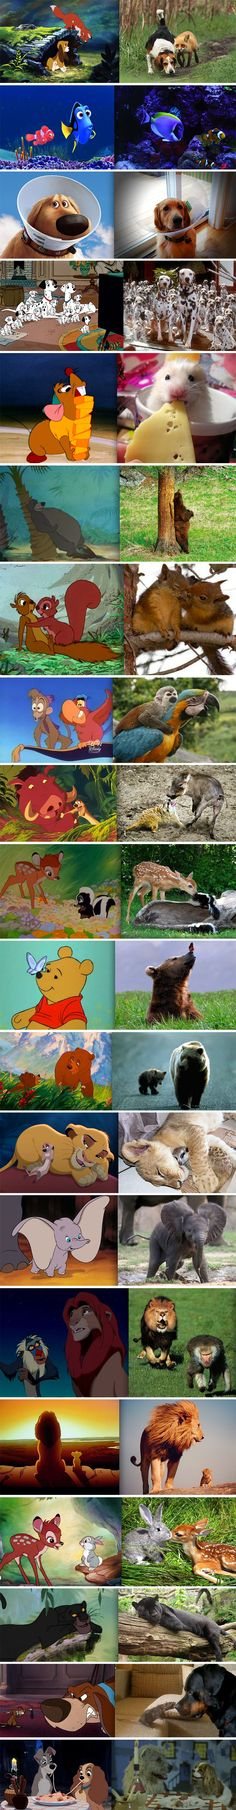 disney animal love is real